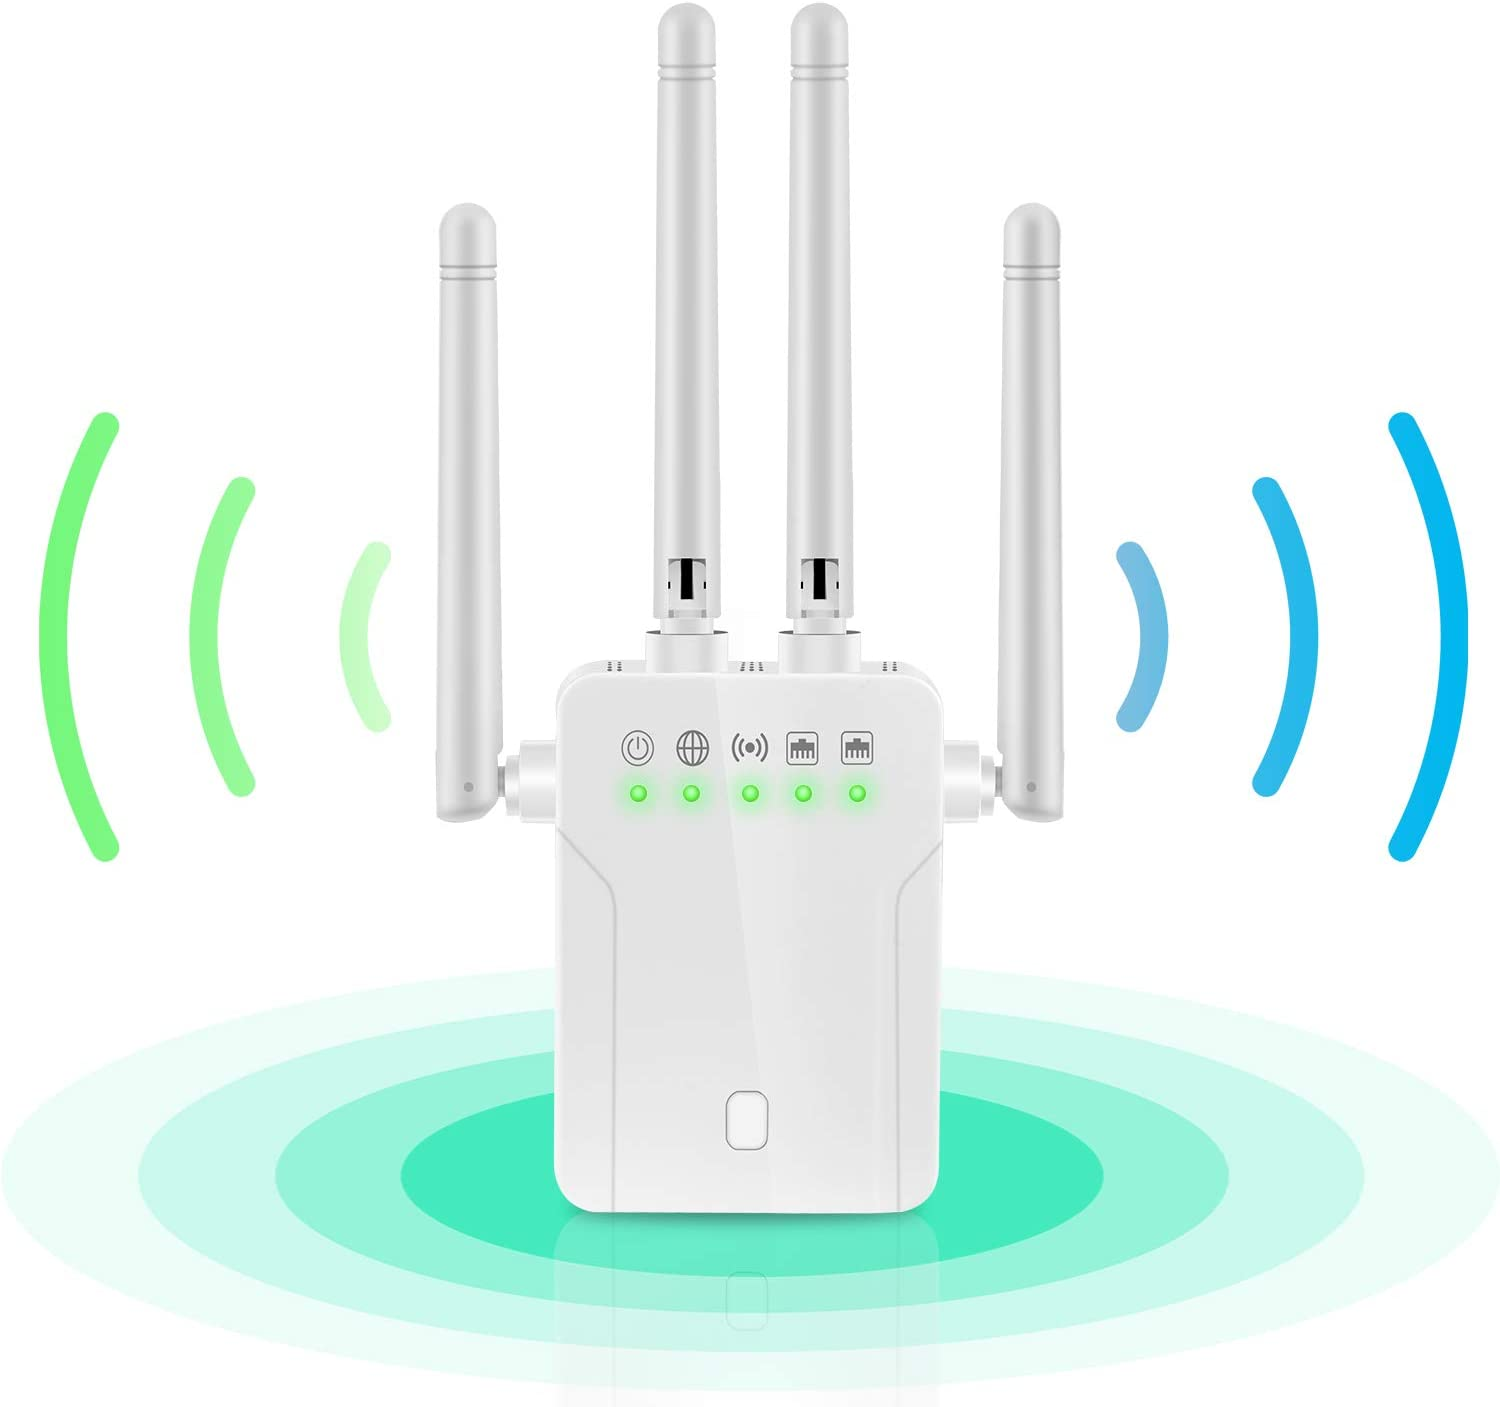 WiFi Booster Covers 20 Devices LAN//Ethernet Ports WiFi Repeater Internet WiFi Range Extender Super Signal Booster 1200 MBPS 2.4 /& 5GHz Wireless Internet Amplifier